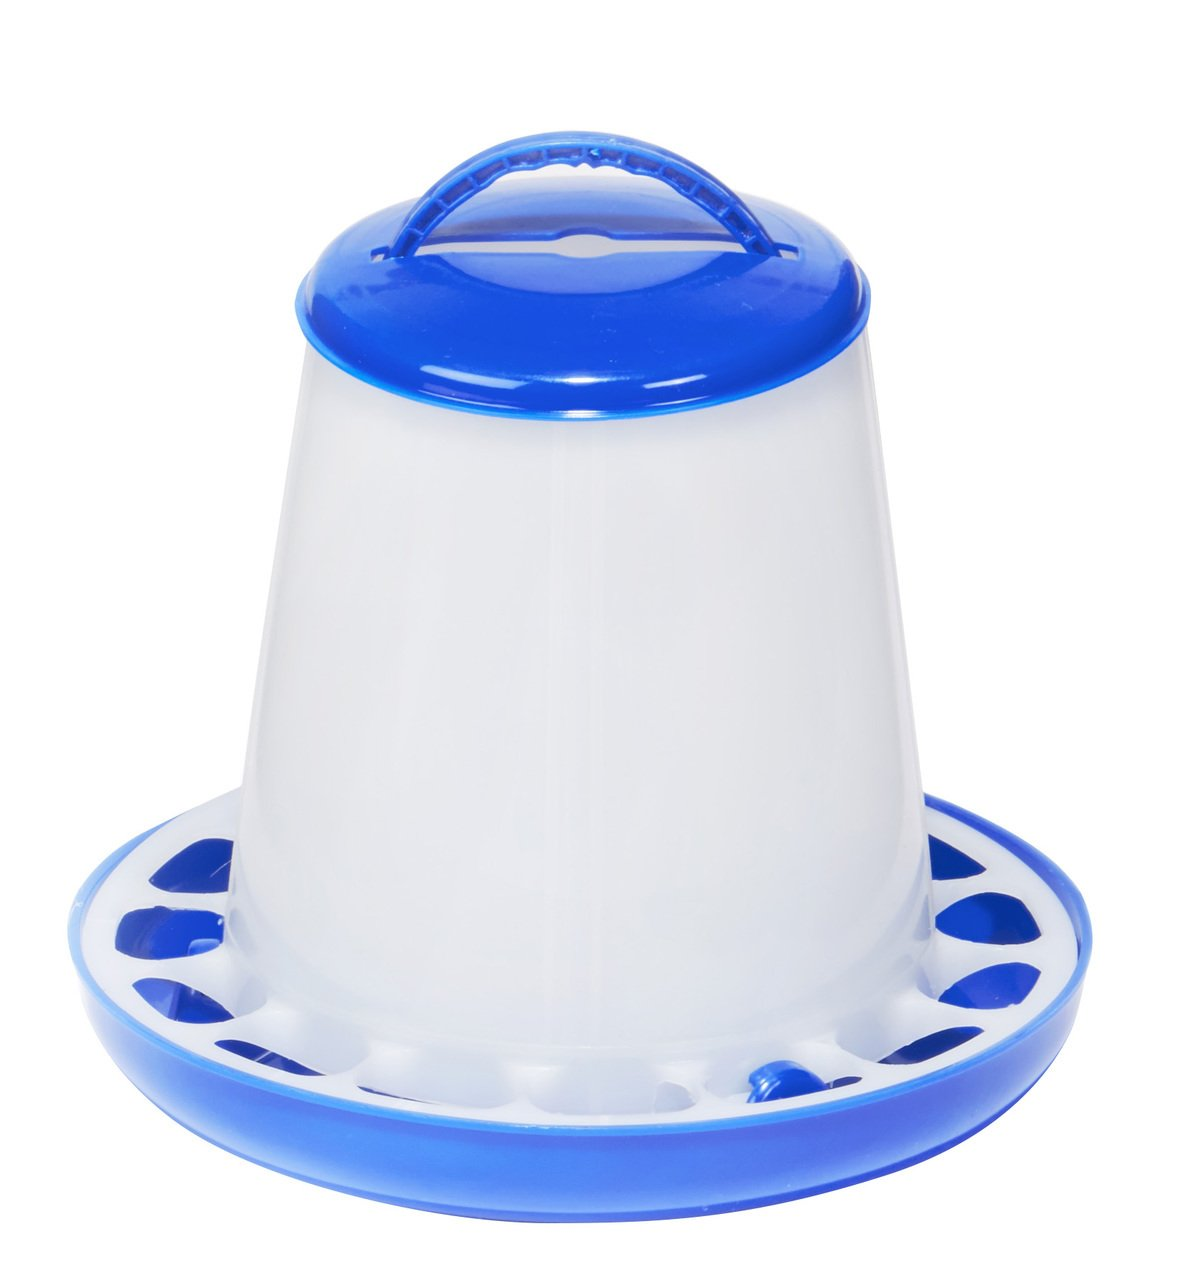 Miller Double-Tuf Hanging Poultry Waterer Image